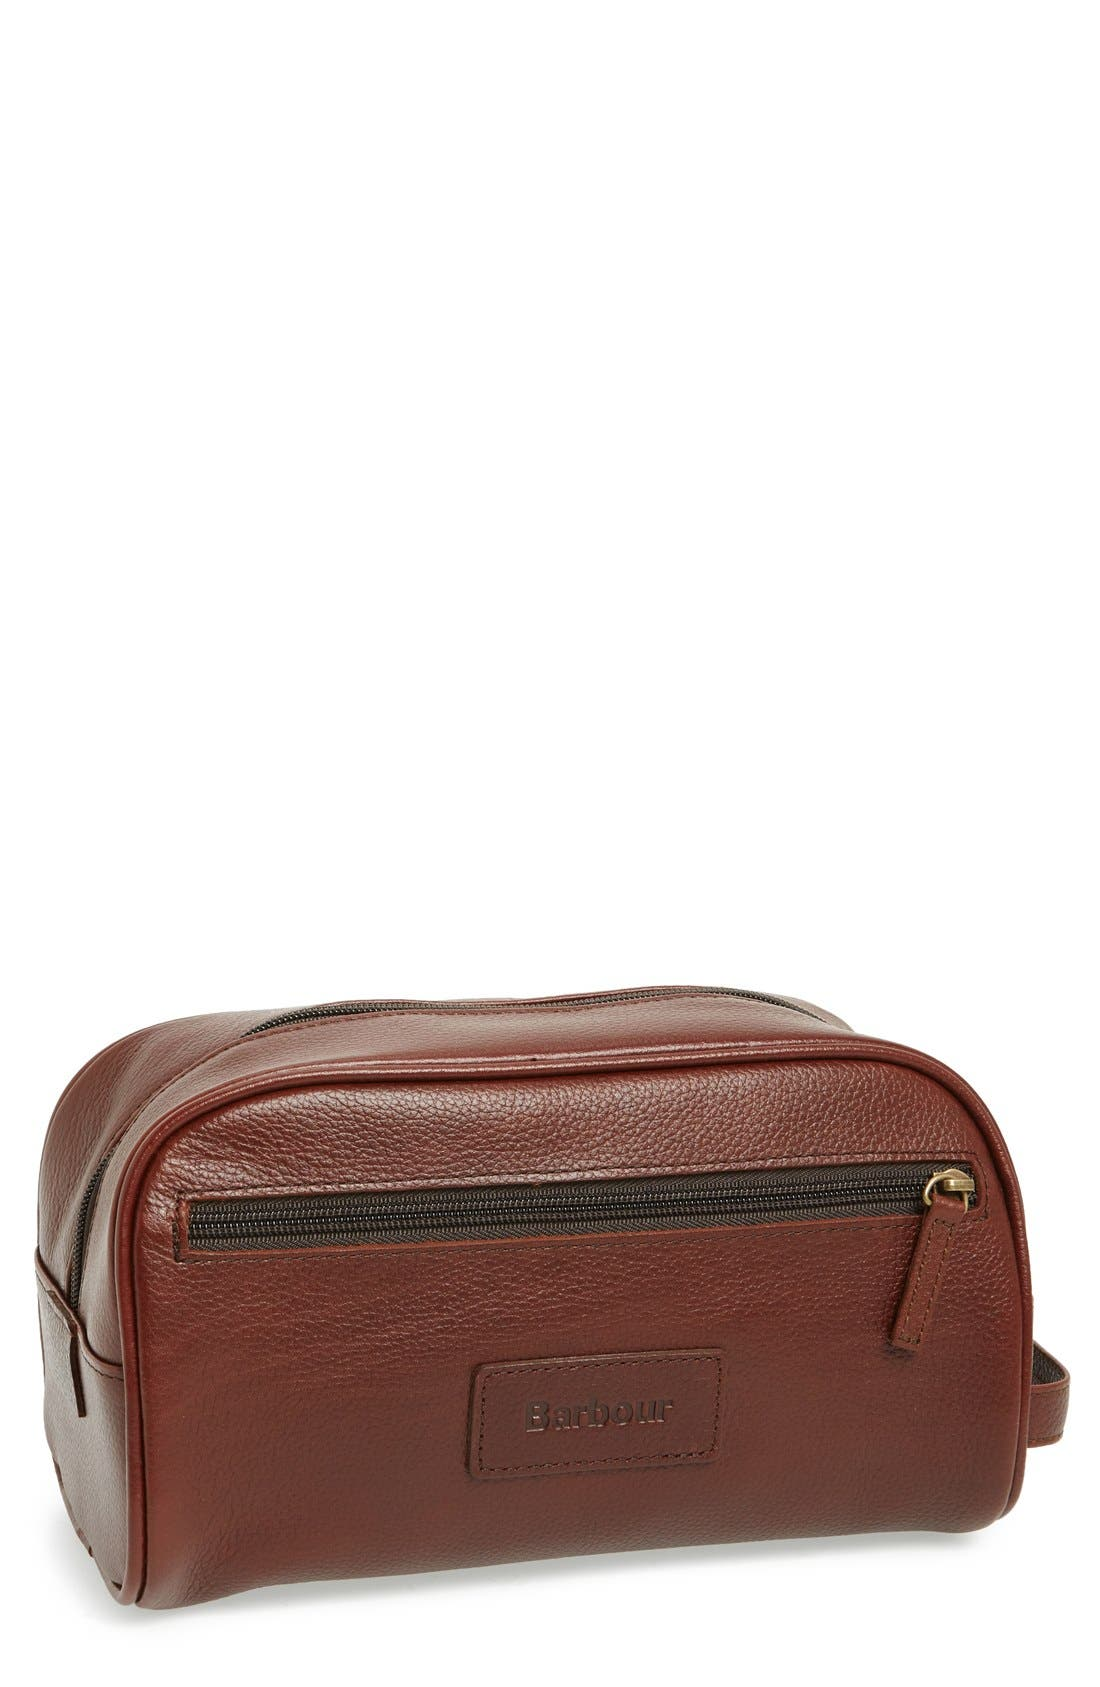 Leather Travel Kit,                             Main thumbnail 1, color,                             204